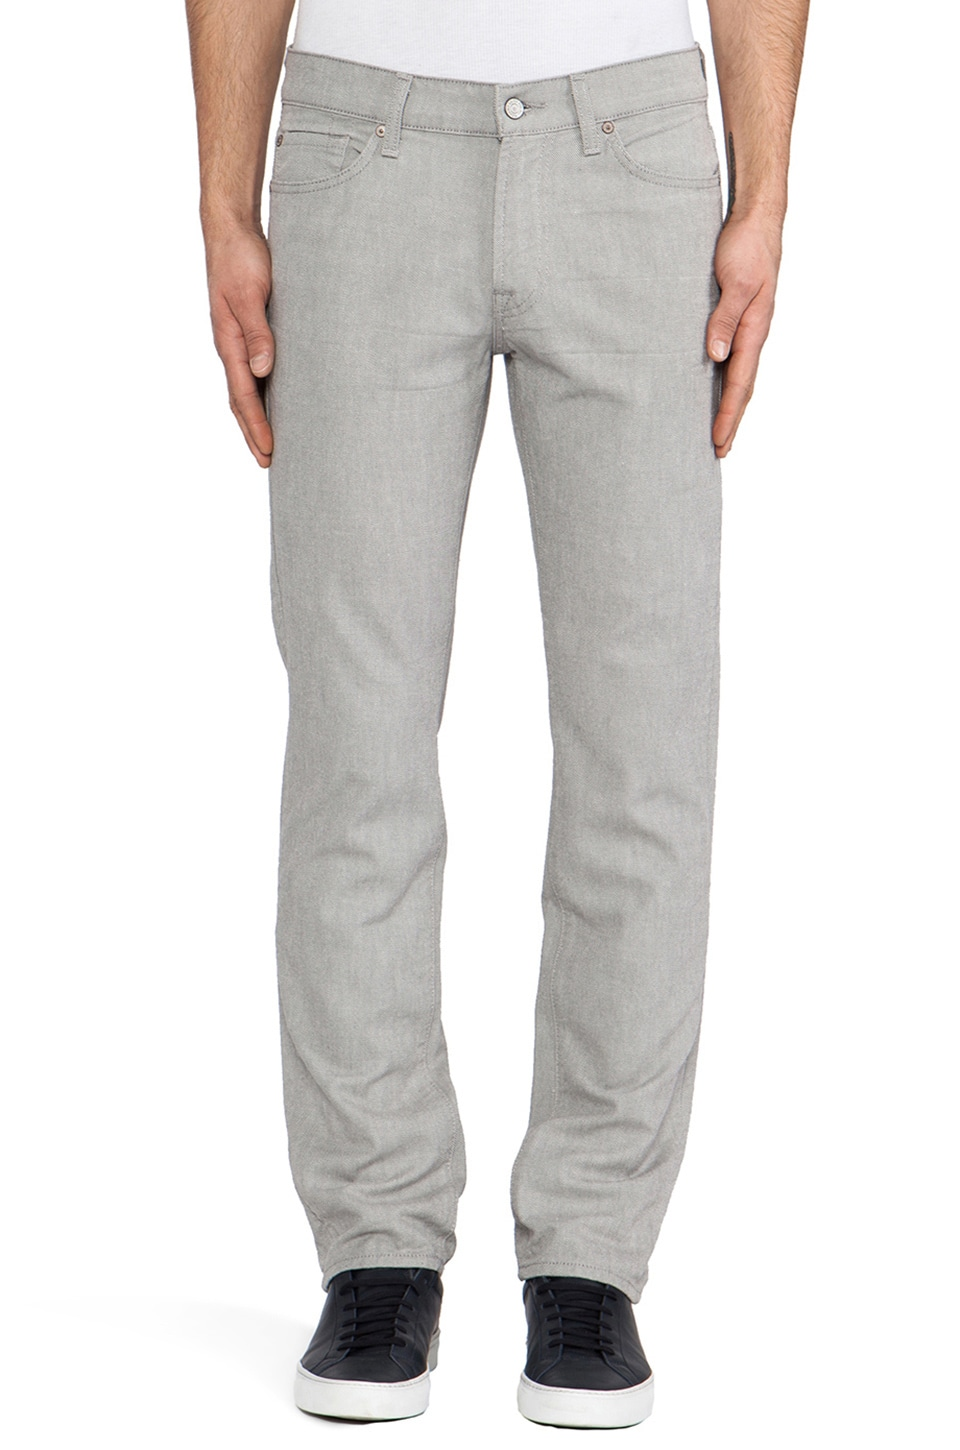 7 For All Mankind White Weft Slimmy in Grey